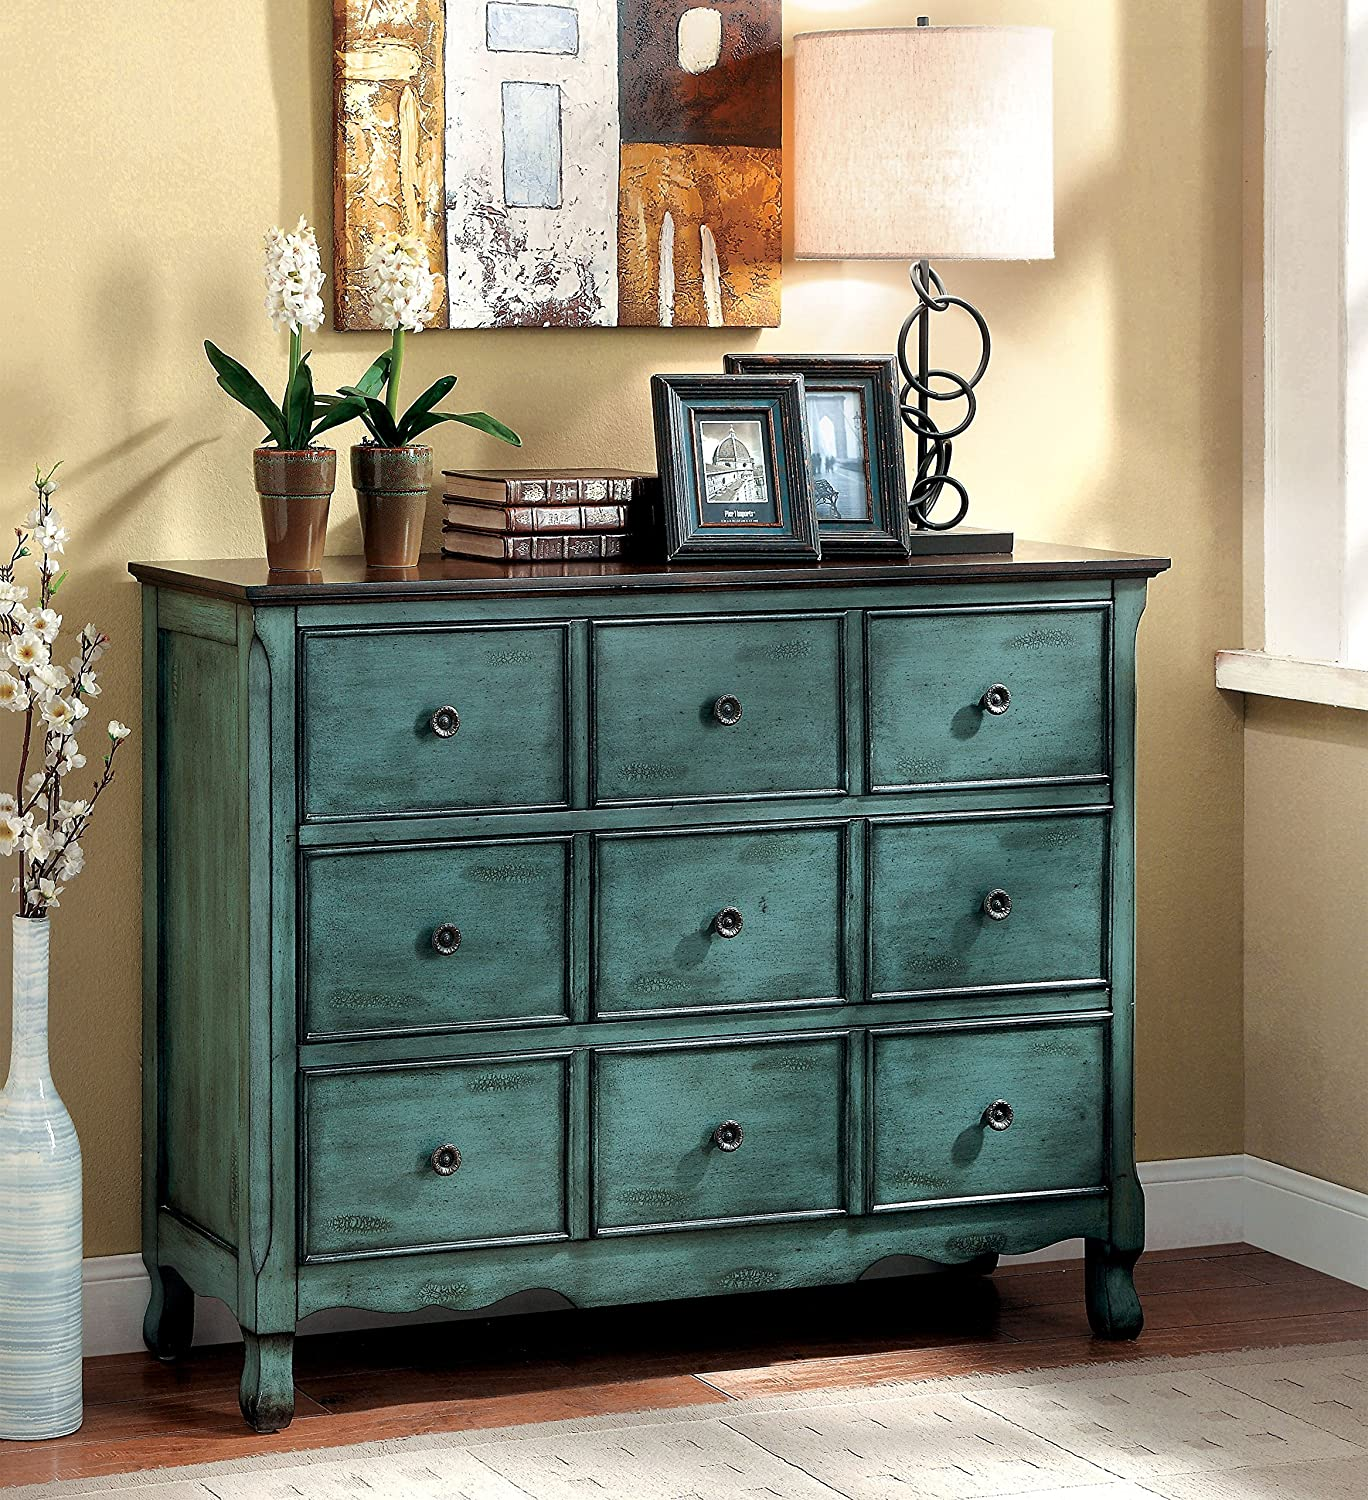 Amazon.com: Furniture Of America Camina Vintage Style Storage Chest,  Antique Green/Brown: Kitchen U0026 Dining